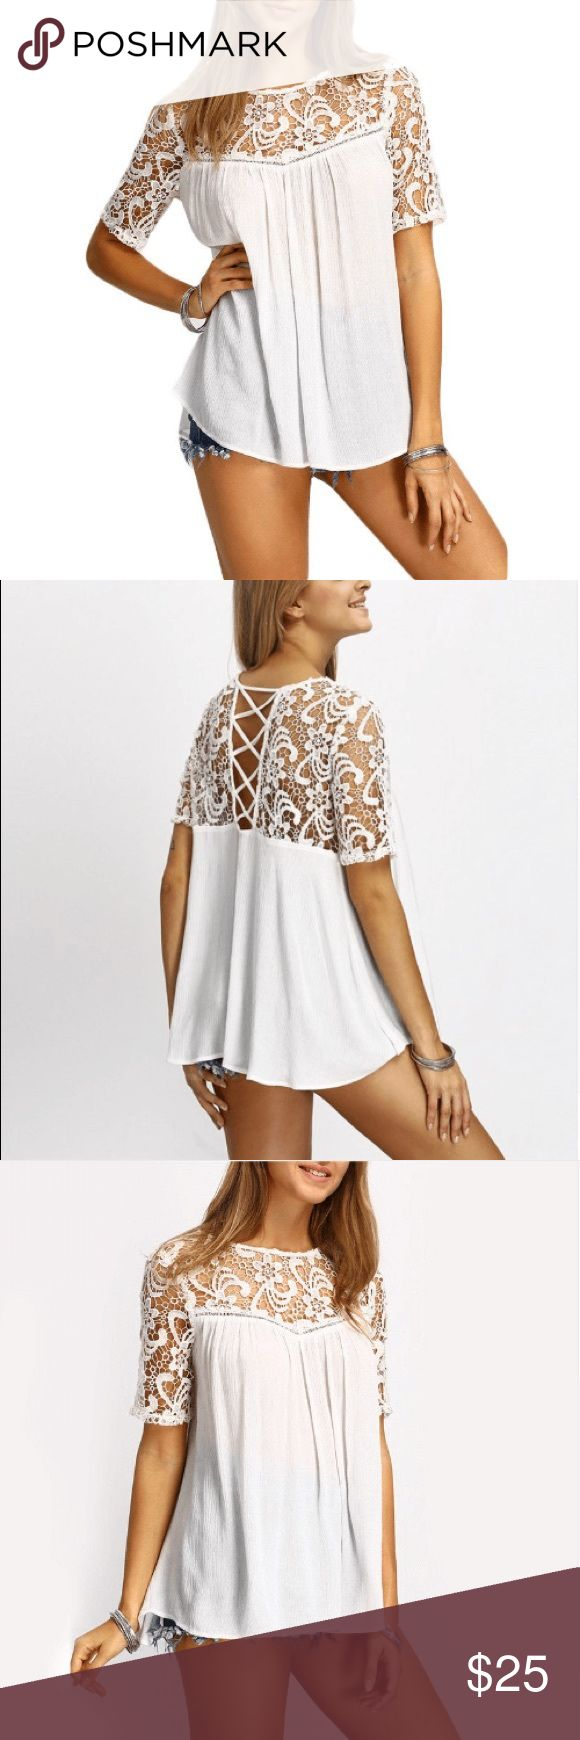 Crochet Short Sleeve Top Loose Fit This crochet short sleeve top offers chic style with a simple feminine flair. Pair it with your favorite jeans or a pair of shorts.                                Material: Cotton, Polyester                                       Add to Cart :) UshopTwo Tops Blouses